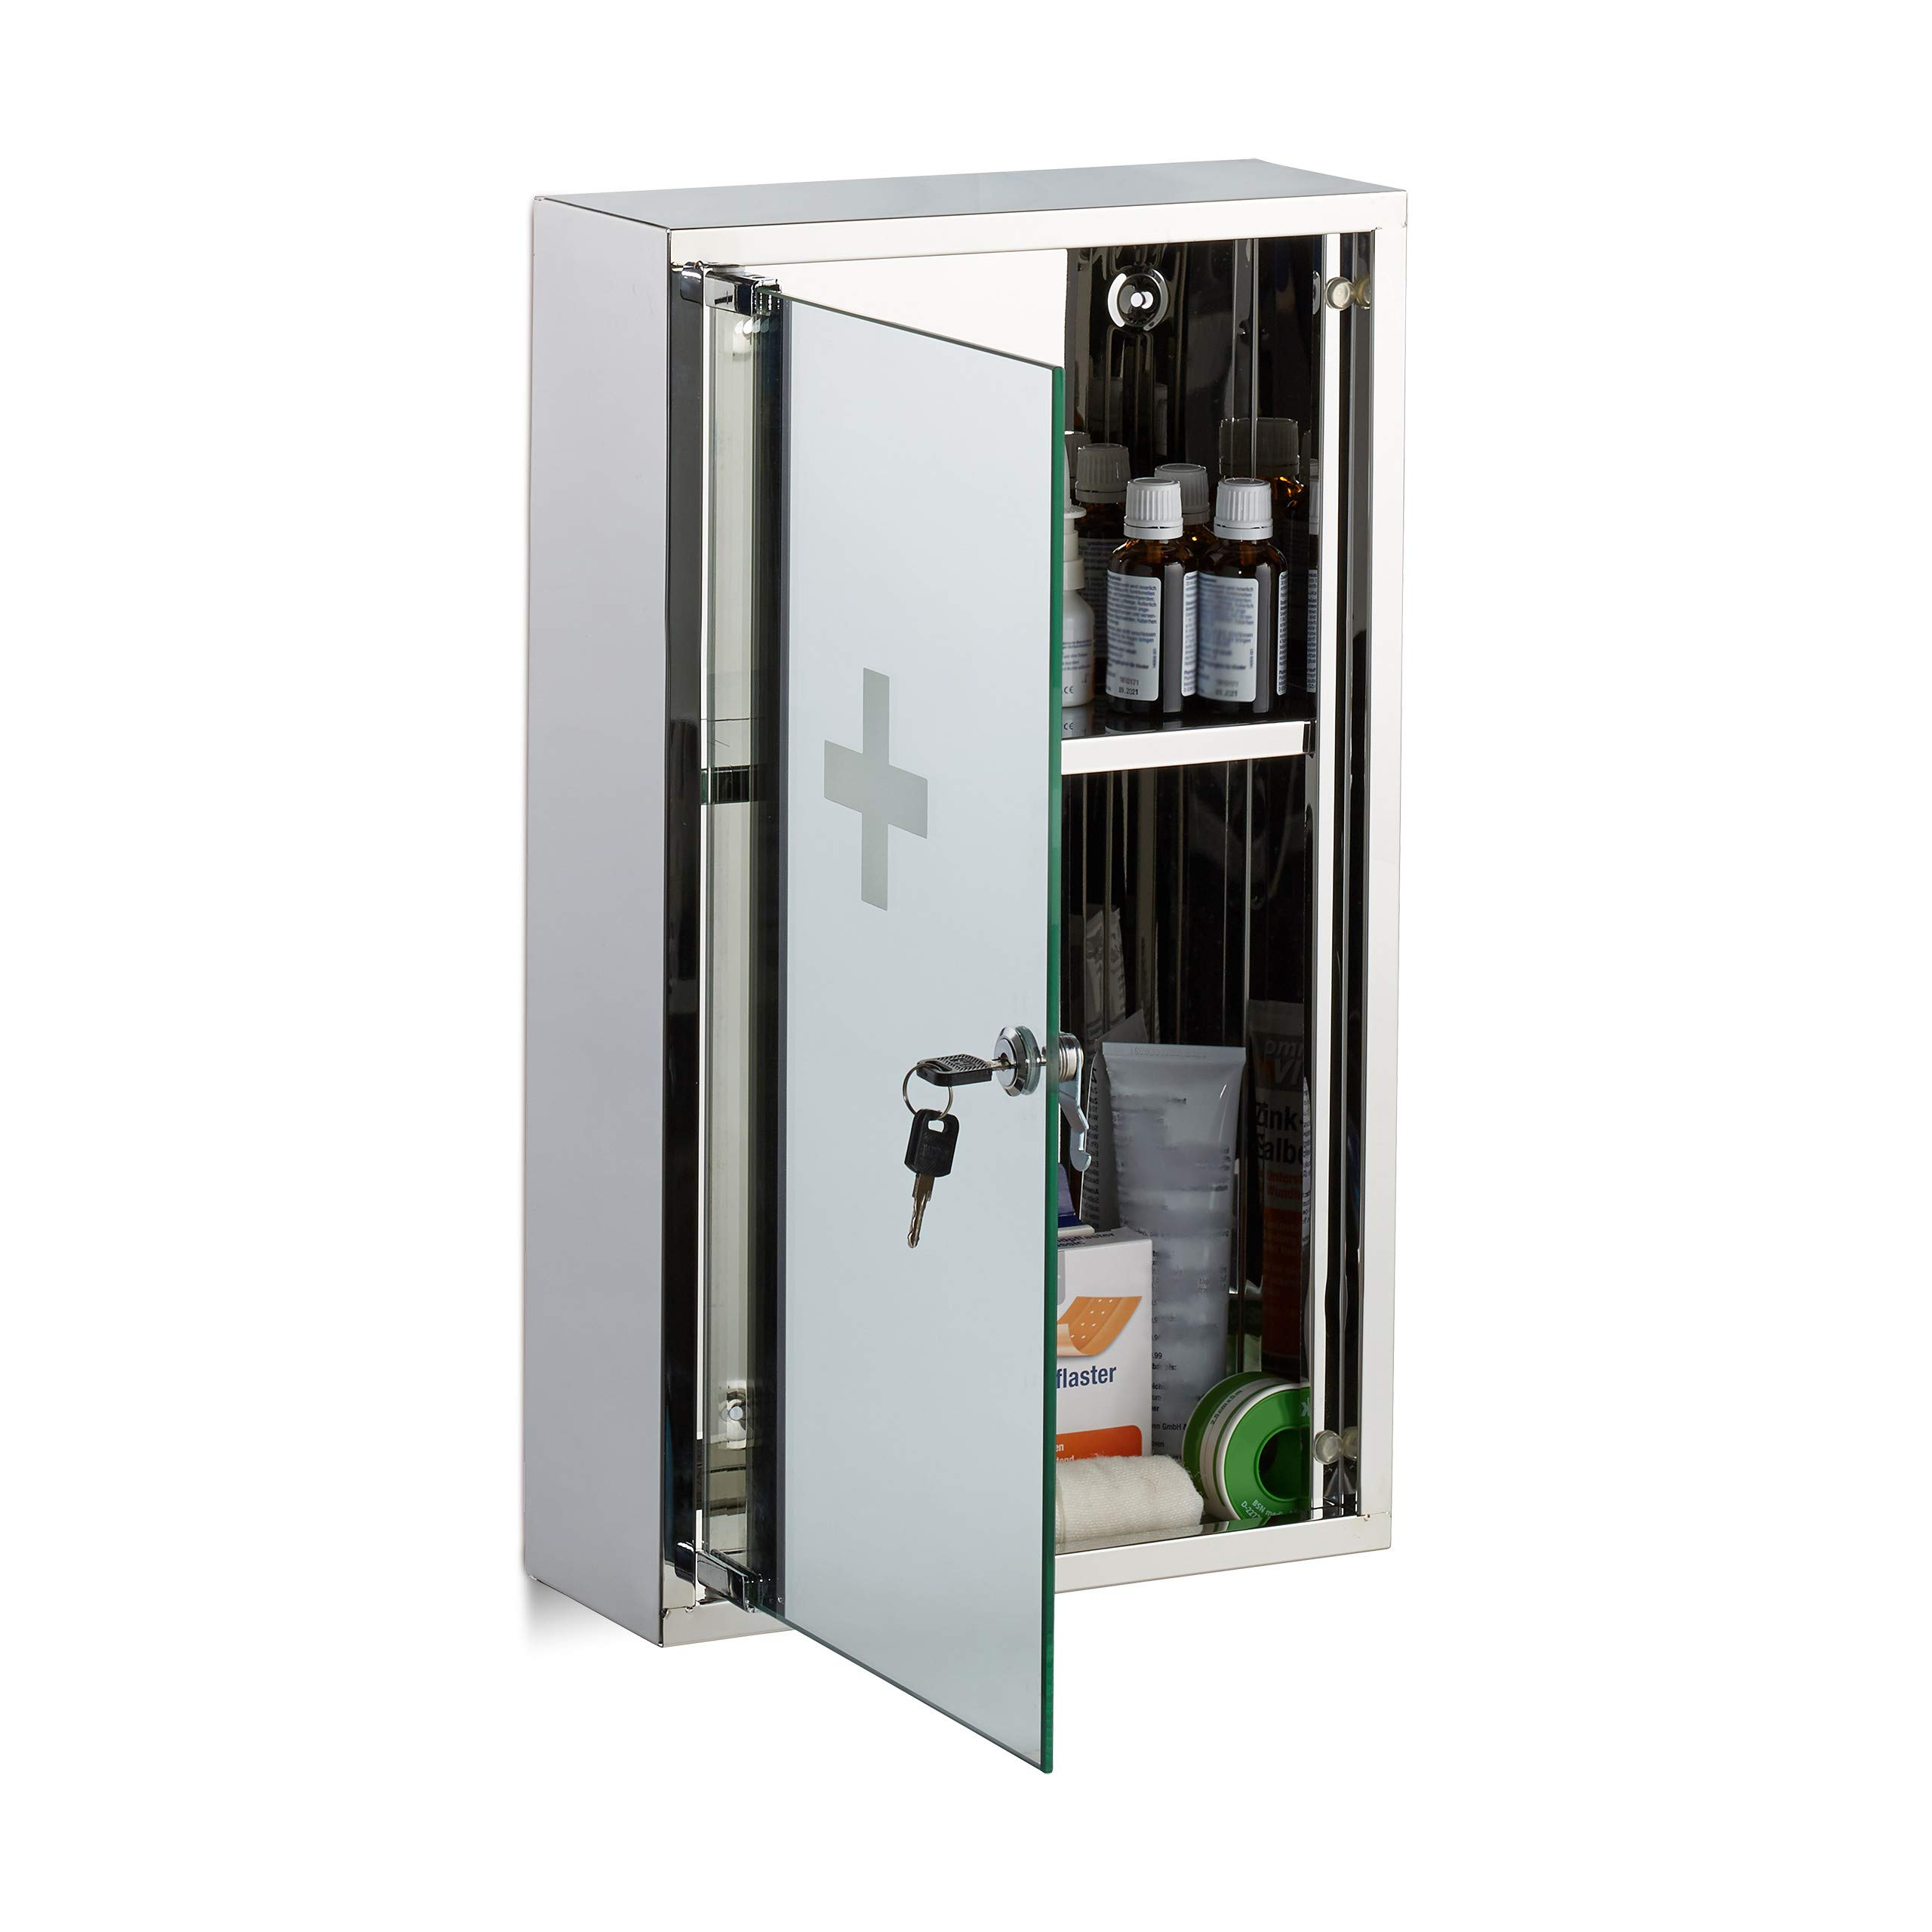 Relaxdays Stainless Steel Medicine Cabinet, Lockable Mirror Door, 2 Compartments, Home Pharmacy, Silver, H x W x D: app. 50 x 30 x 11 cm